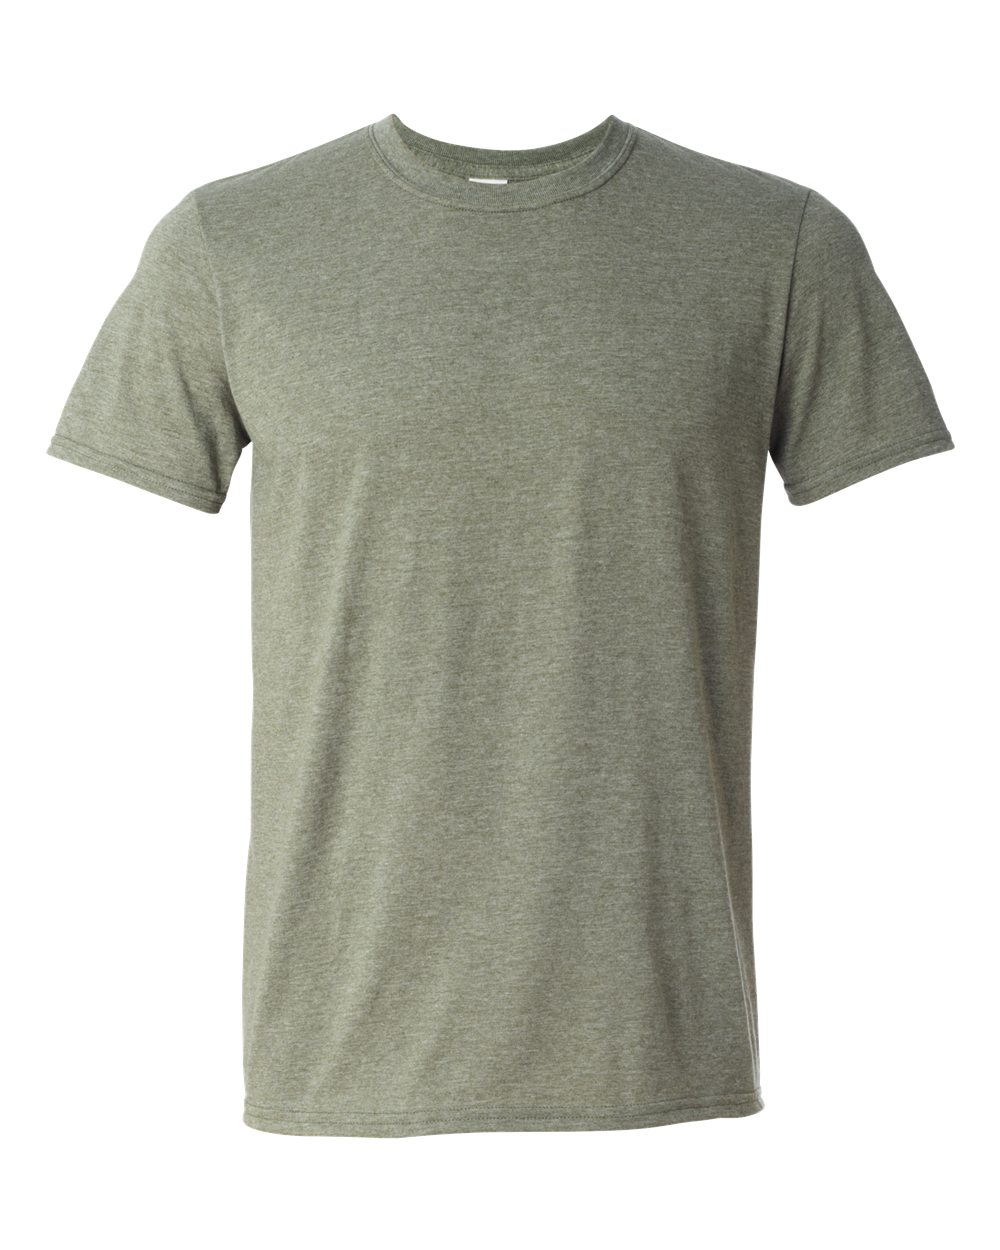 click to view Heather Military Green